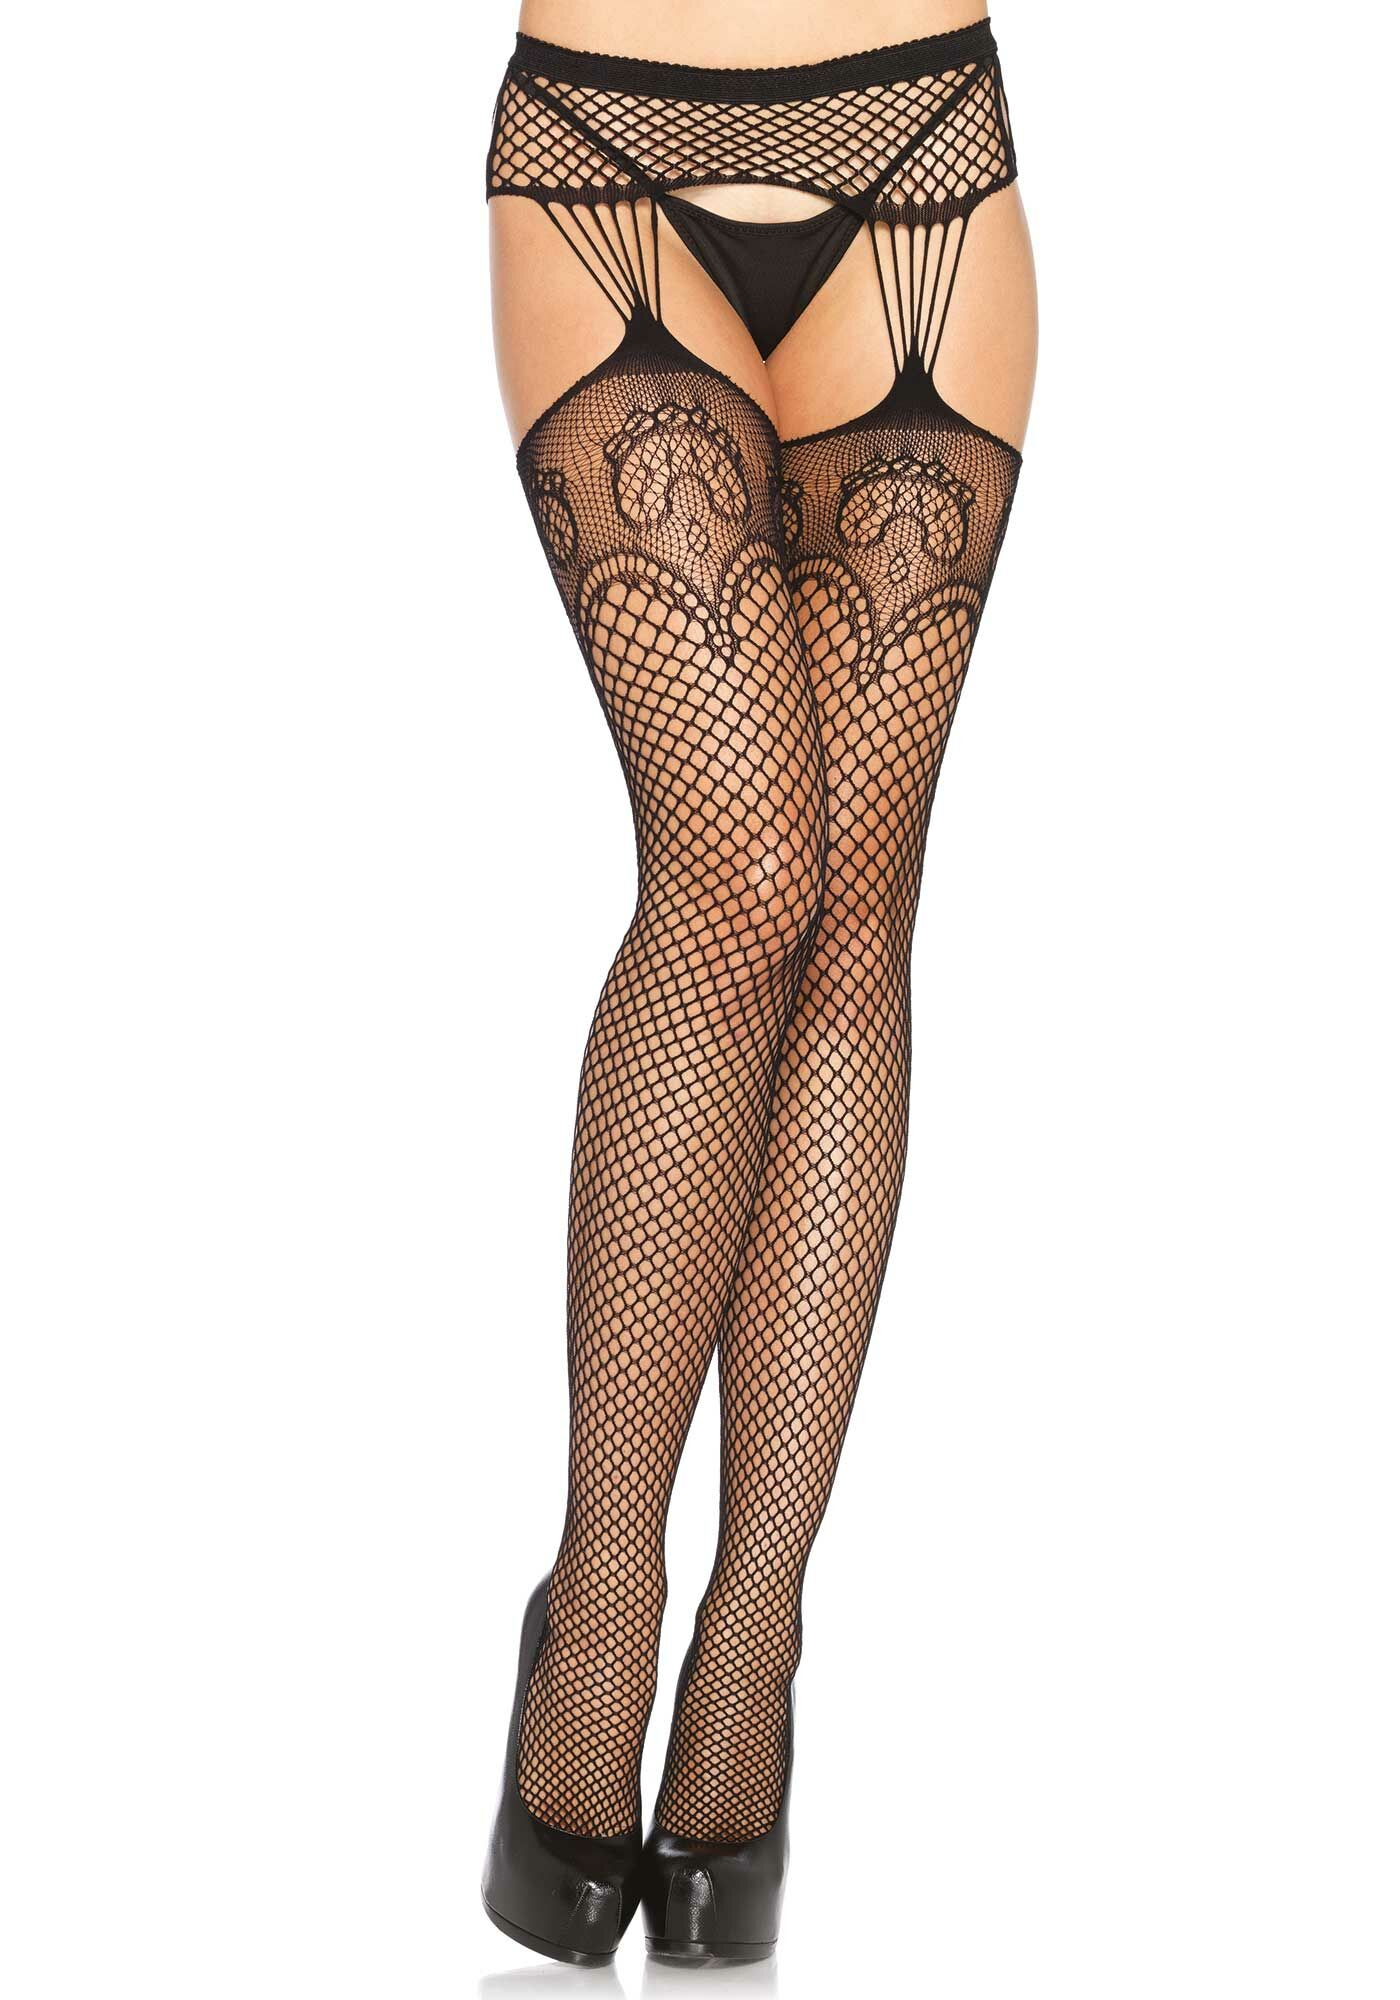 Duchess Lace Top Garterbelt Stockings Suspender Tights